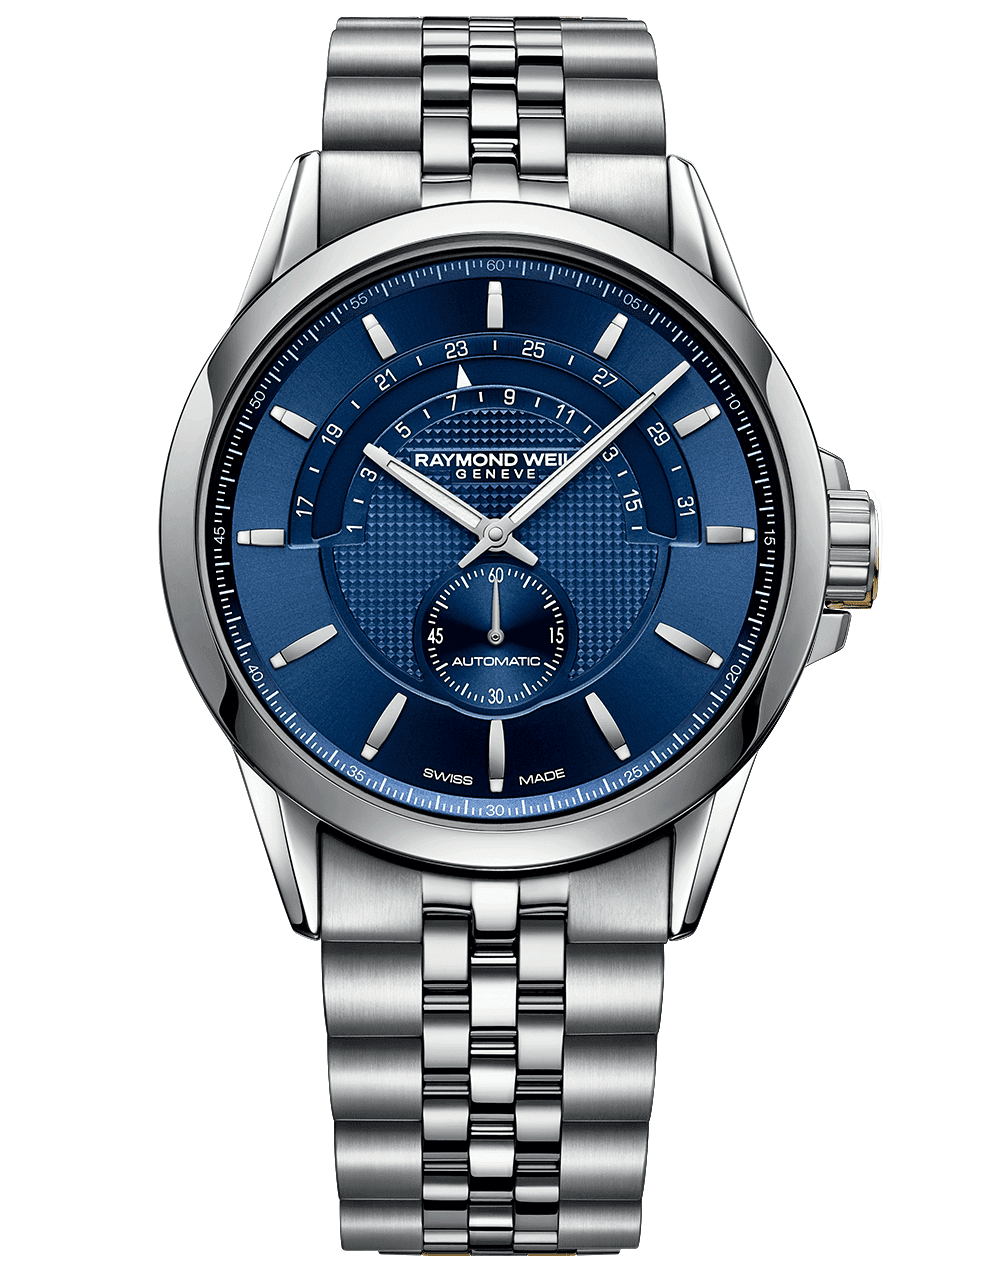 RAYMOND WEIL Freelancer Automatic Halfmoon Date function blue dial, and stainless steel bracelet strap watch